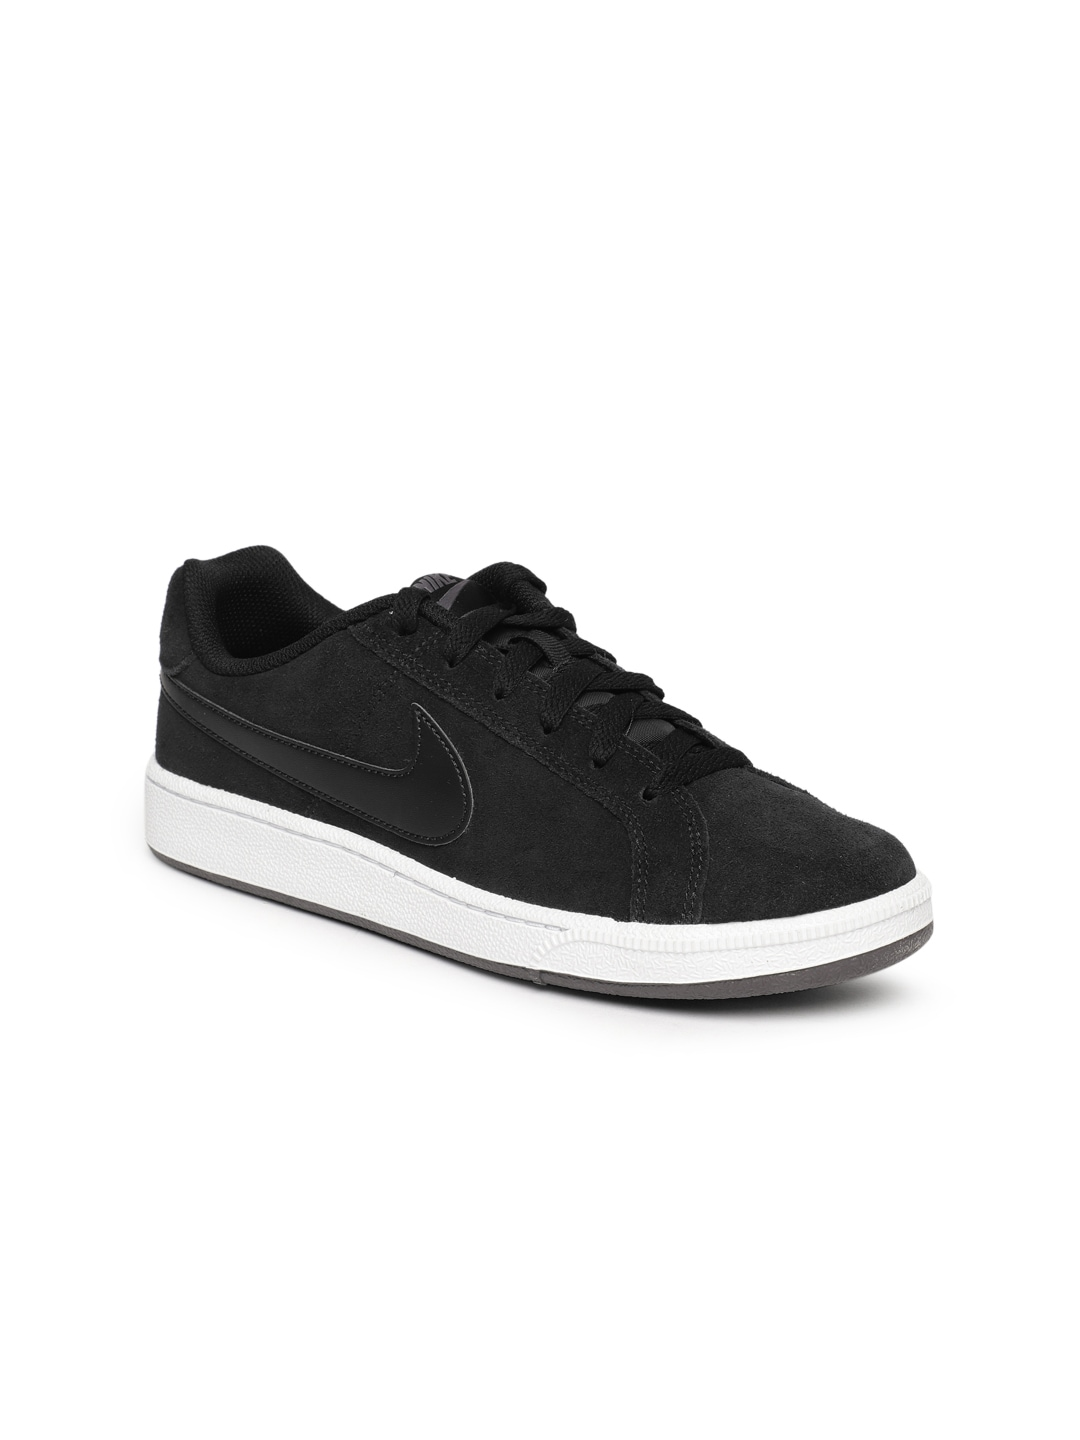 official photos 4c2af 16e3e Nike Suede Shoes - Buy Nike Suede Shoes online in India